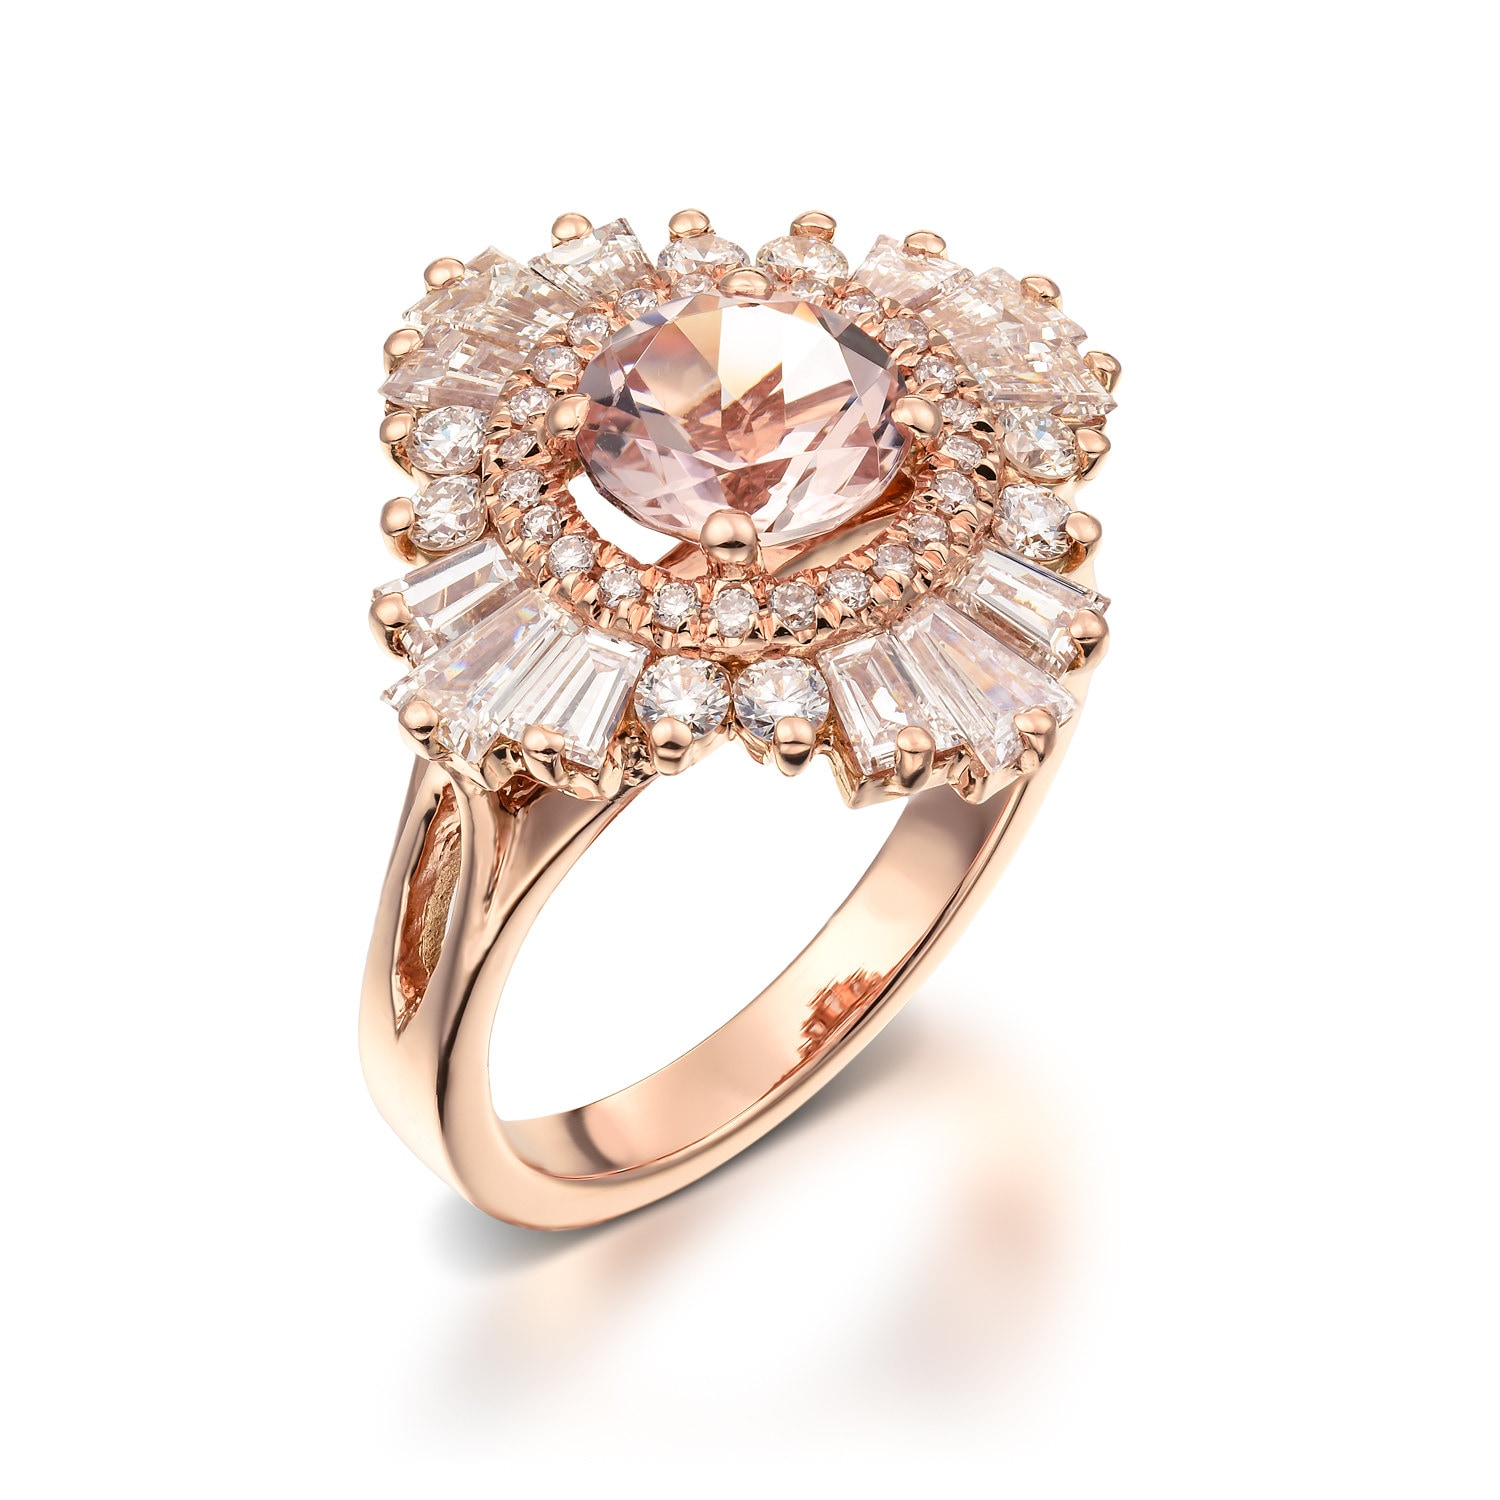 Unique Engagement Ring 18K Rose Gold Diamonds And Morganite